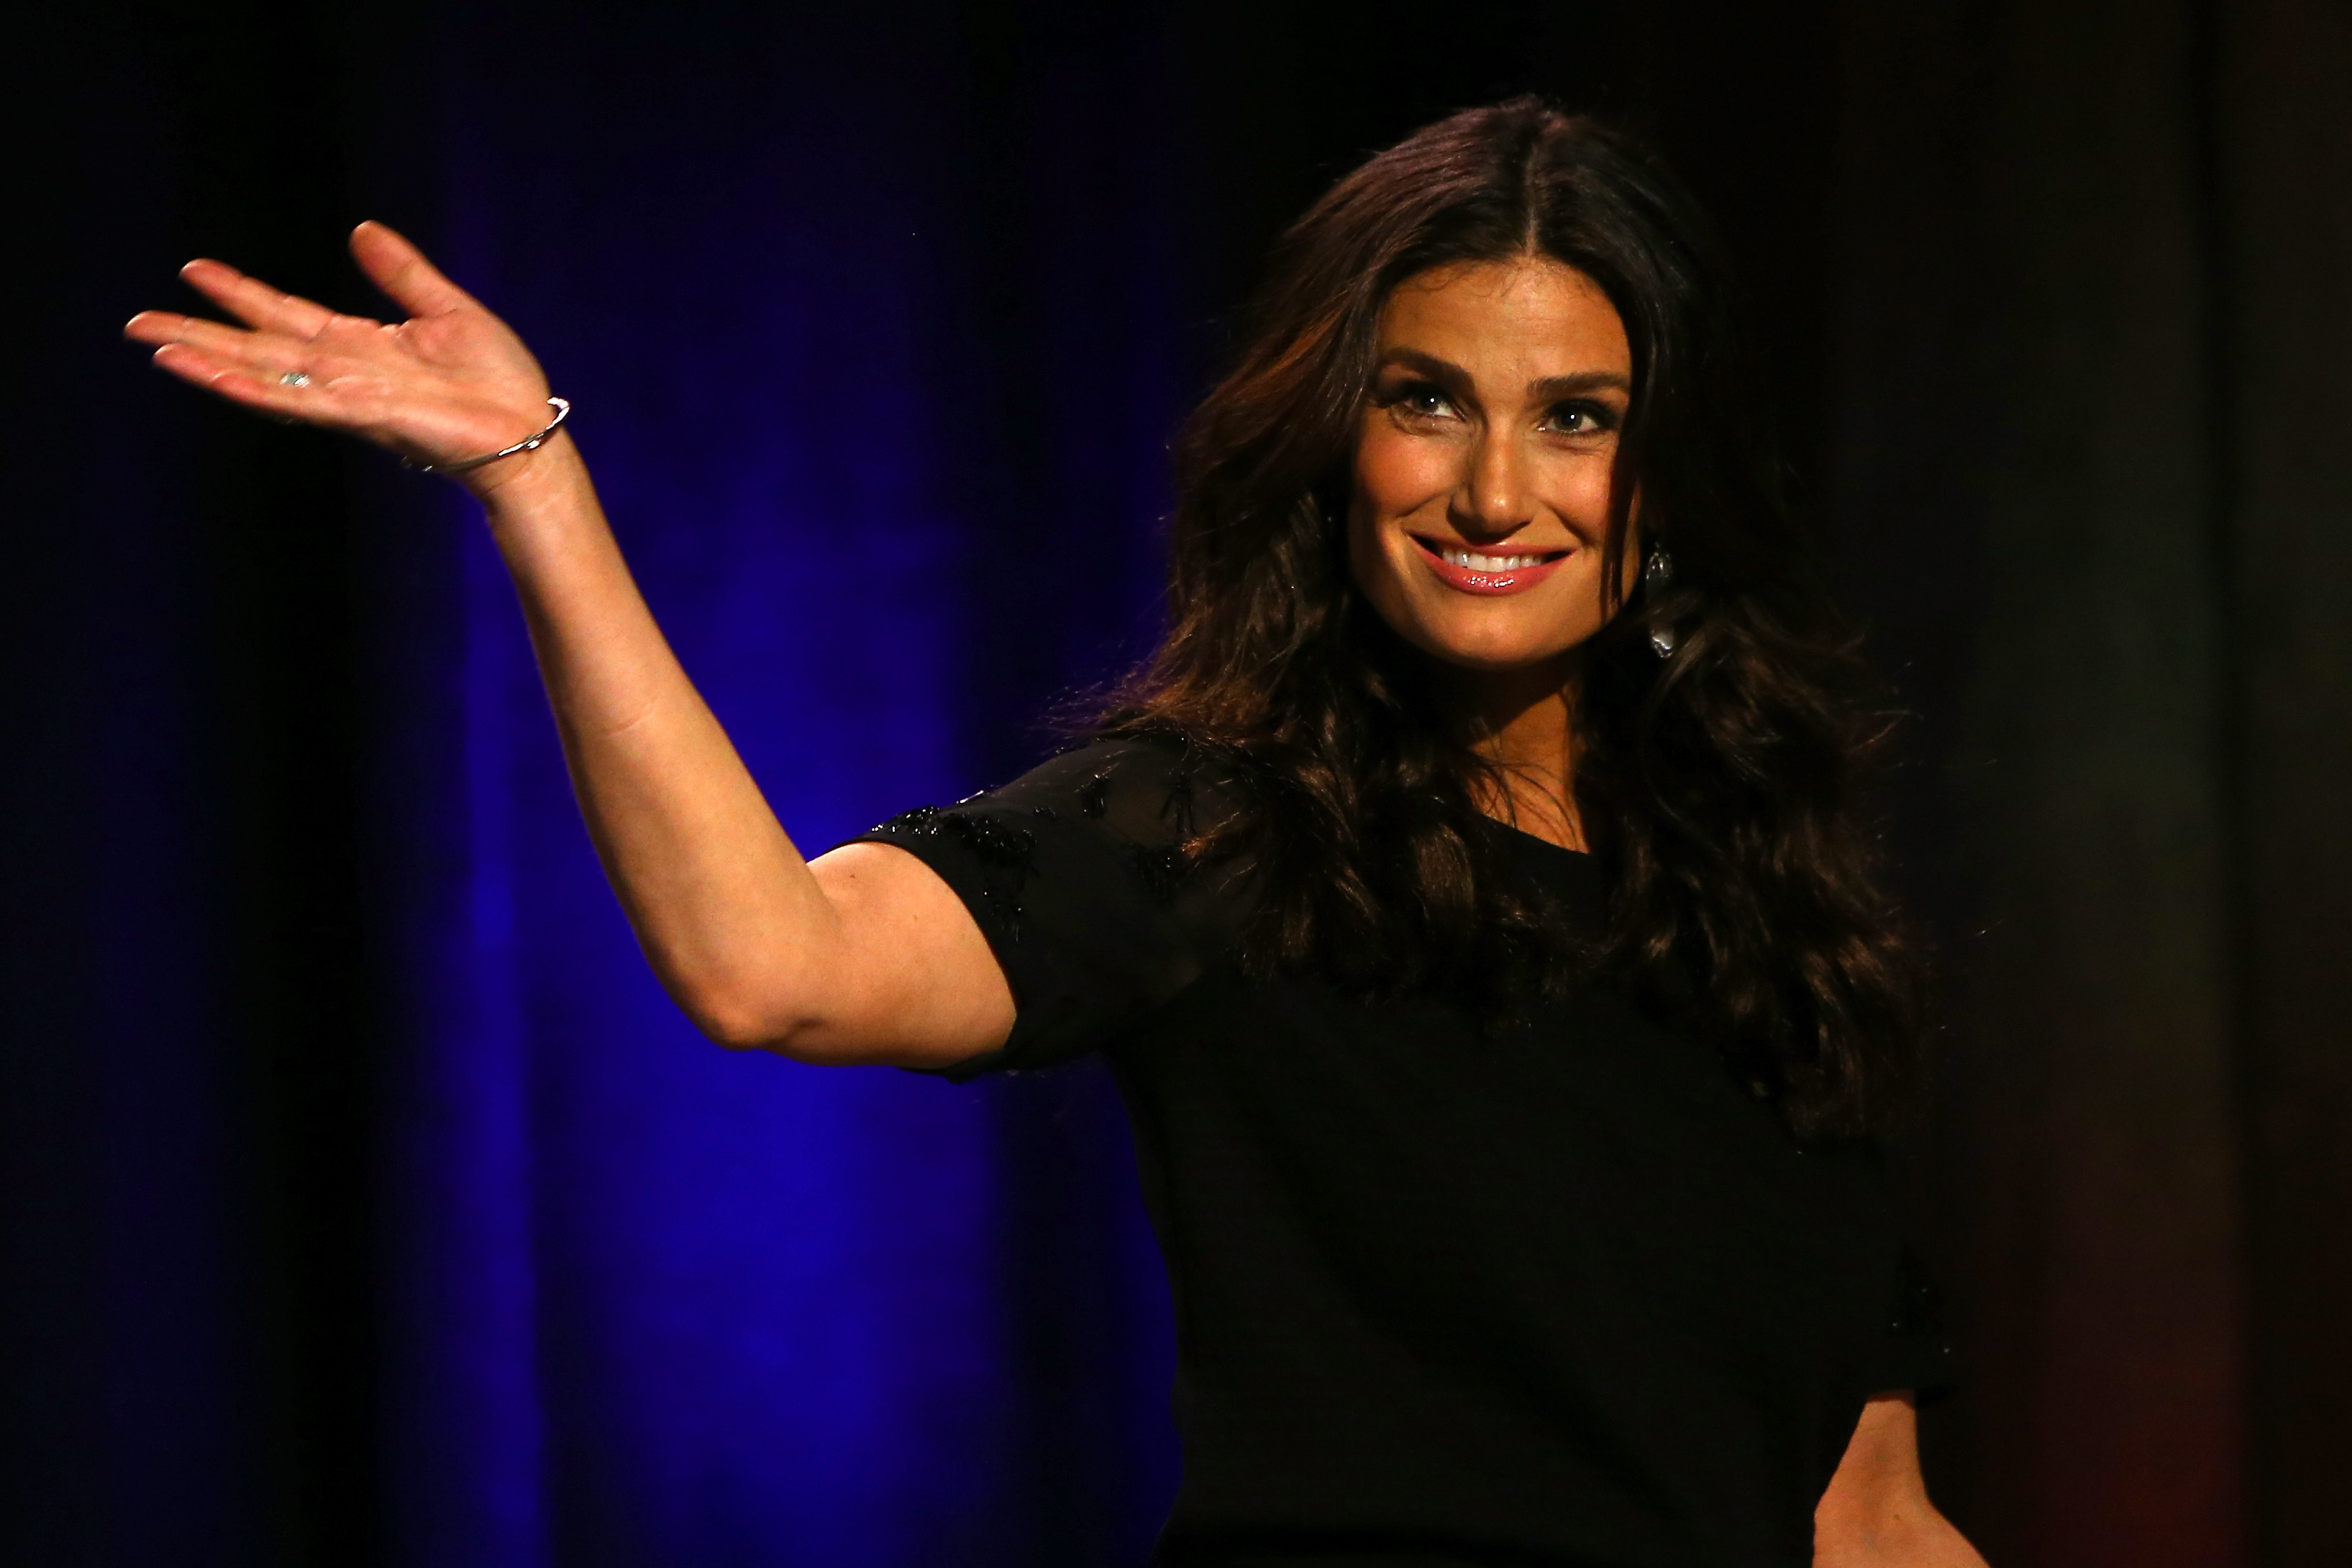 idina menzel her charity are teaching young women to build each